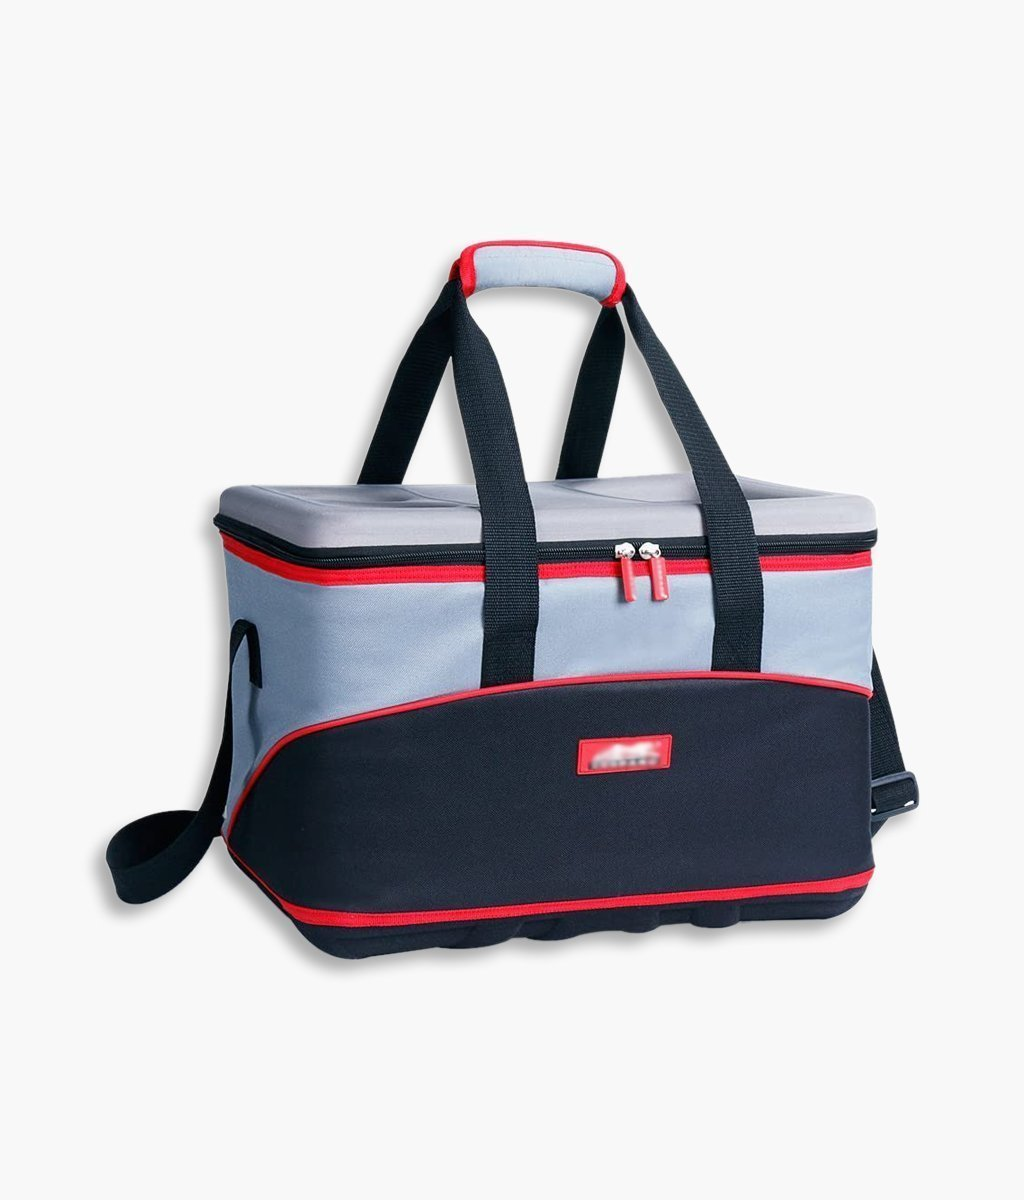 Outdoor Soft Insulated Cooler Bag 24/48 Cans